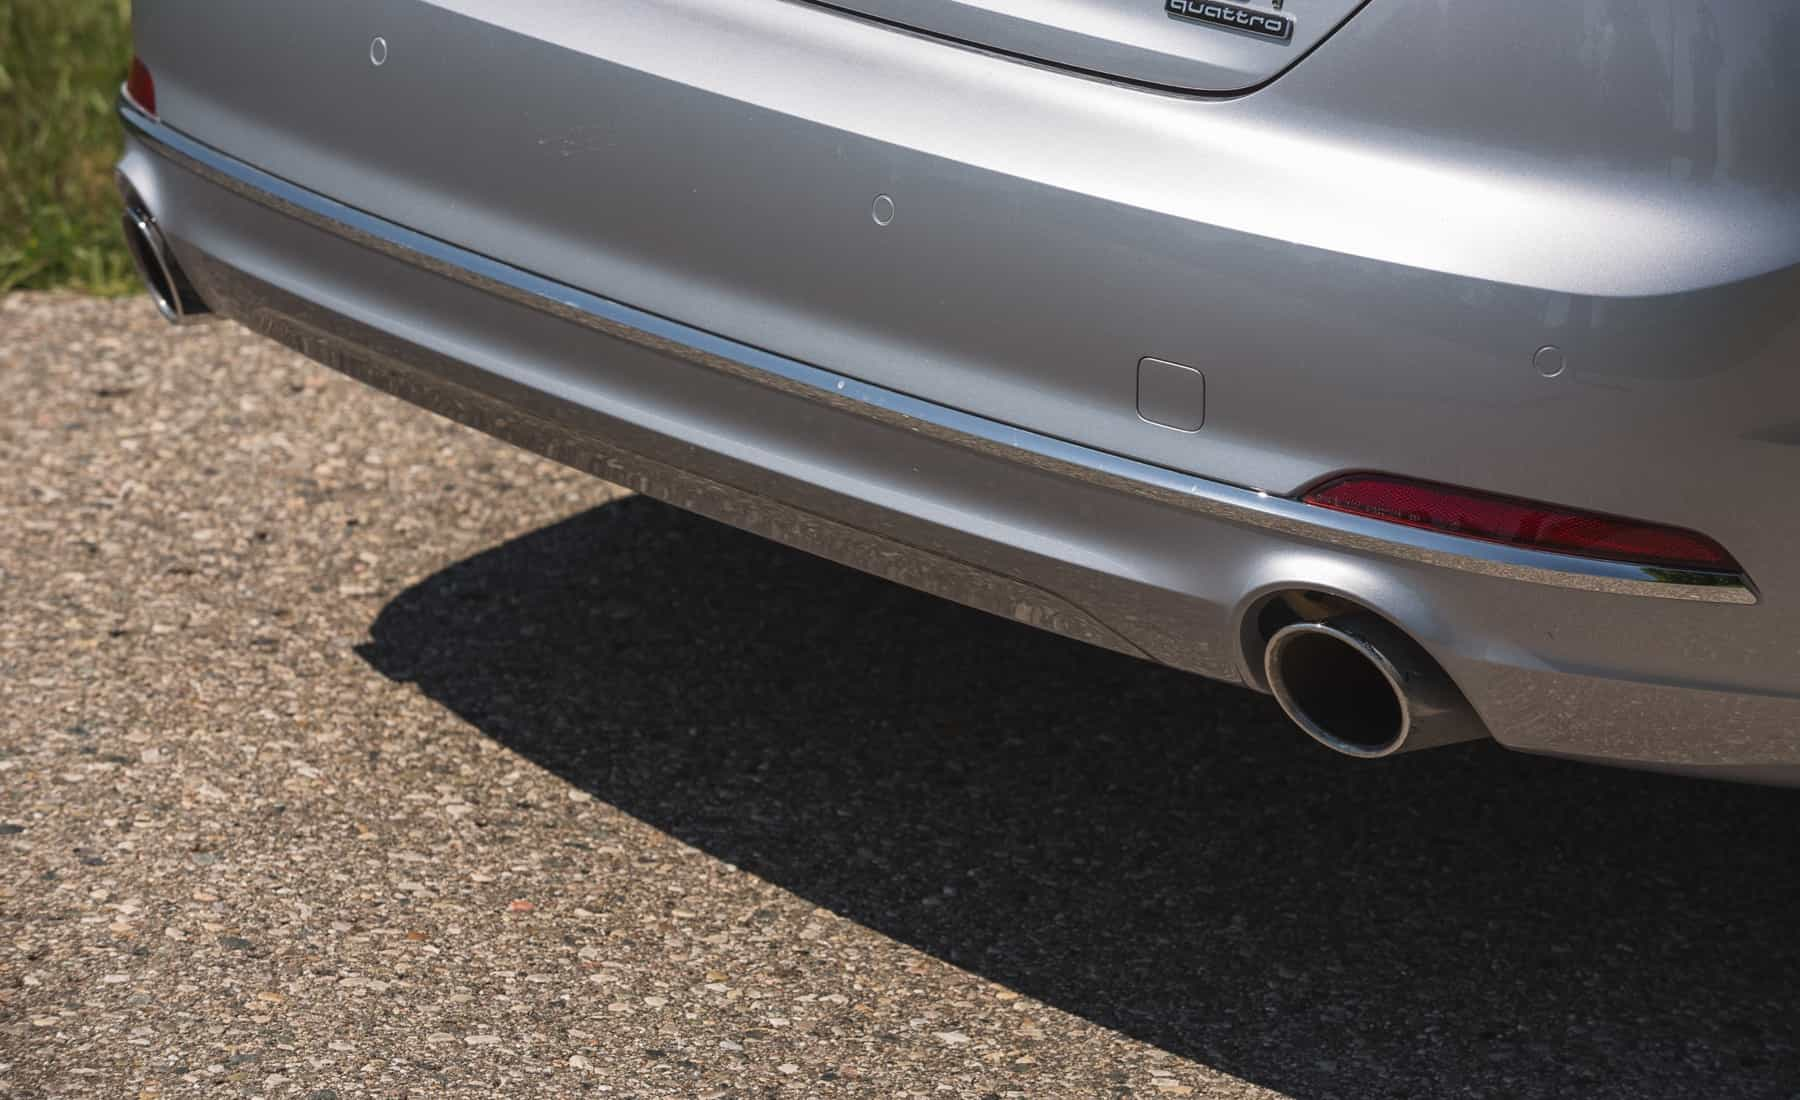 2018 Audi A5 Cabriolet Exterior View Rear Bumper (Photo 28 of 45)